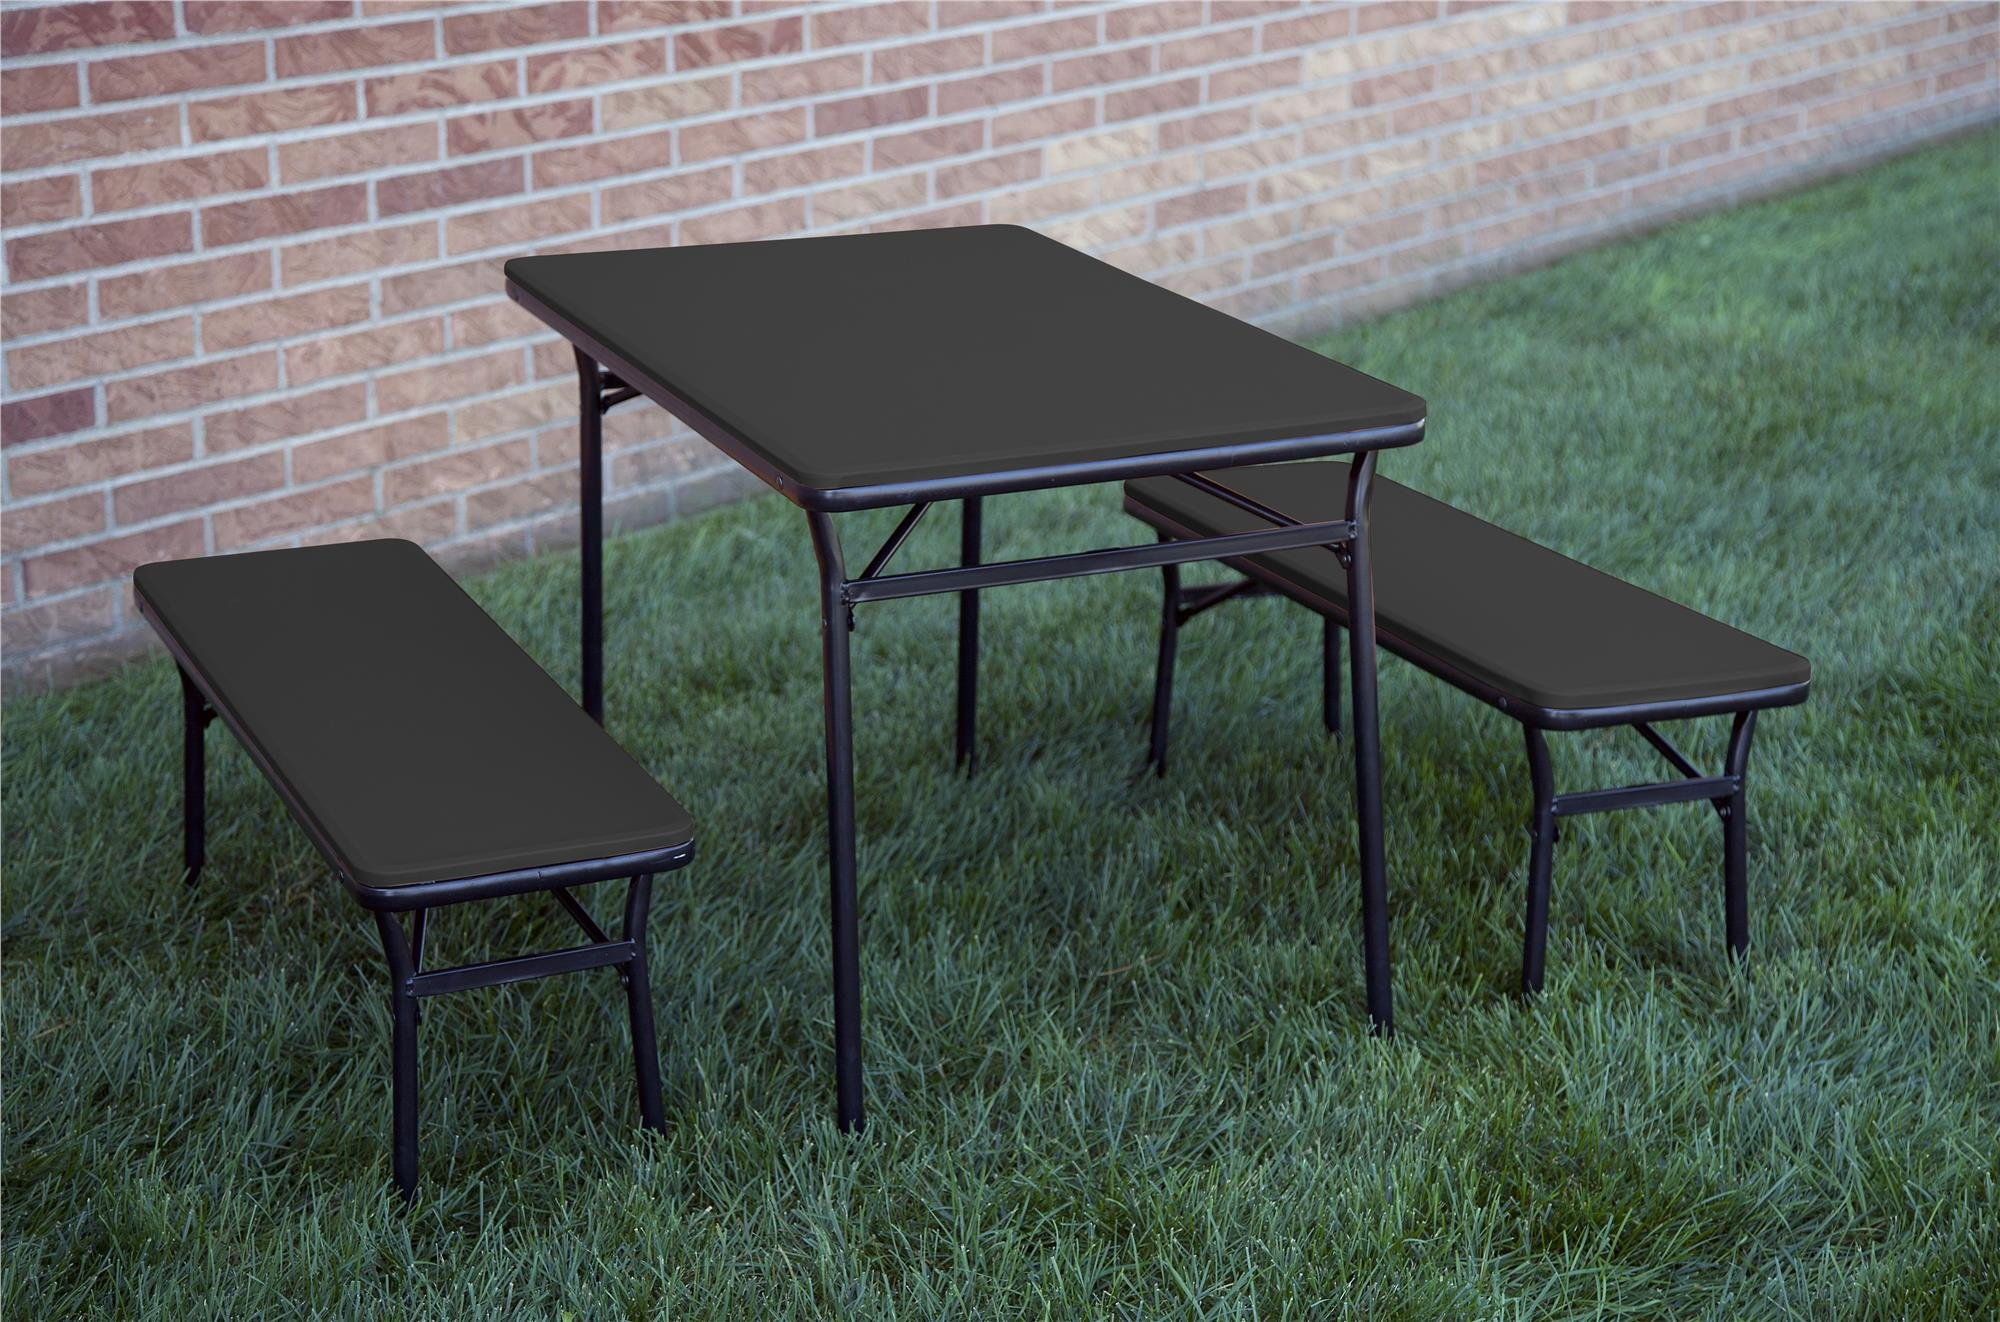 Cosco Products COSCO 3 Piece Indoor Outdoor Table and 2 Bench Tailgate Set, Black by Cosco Products (Image #12)